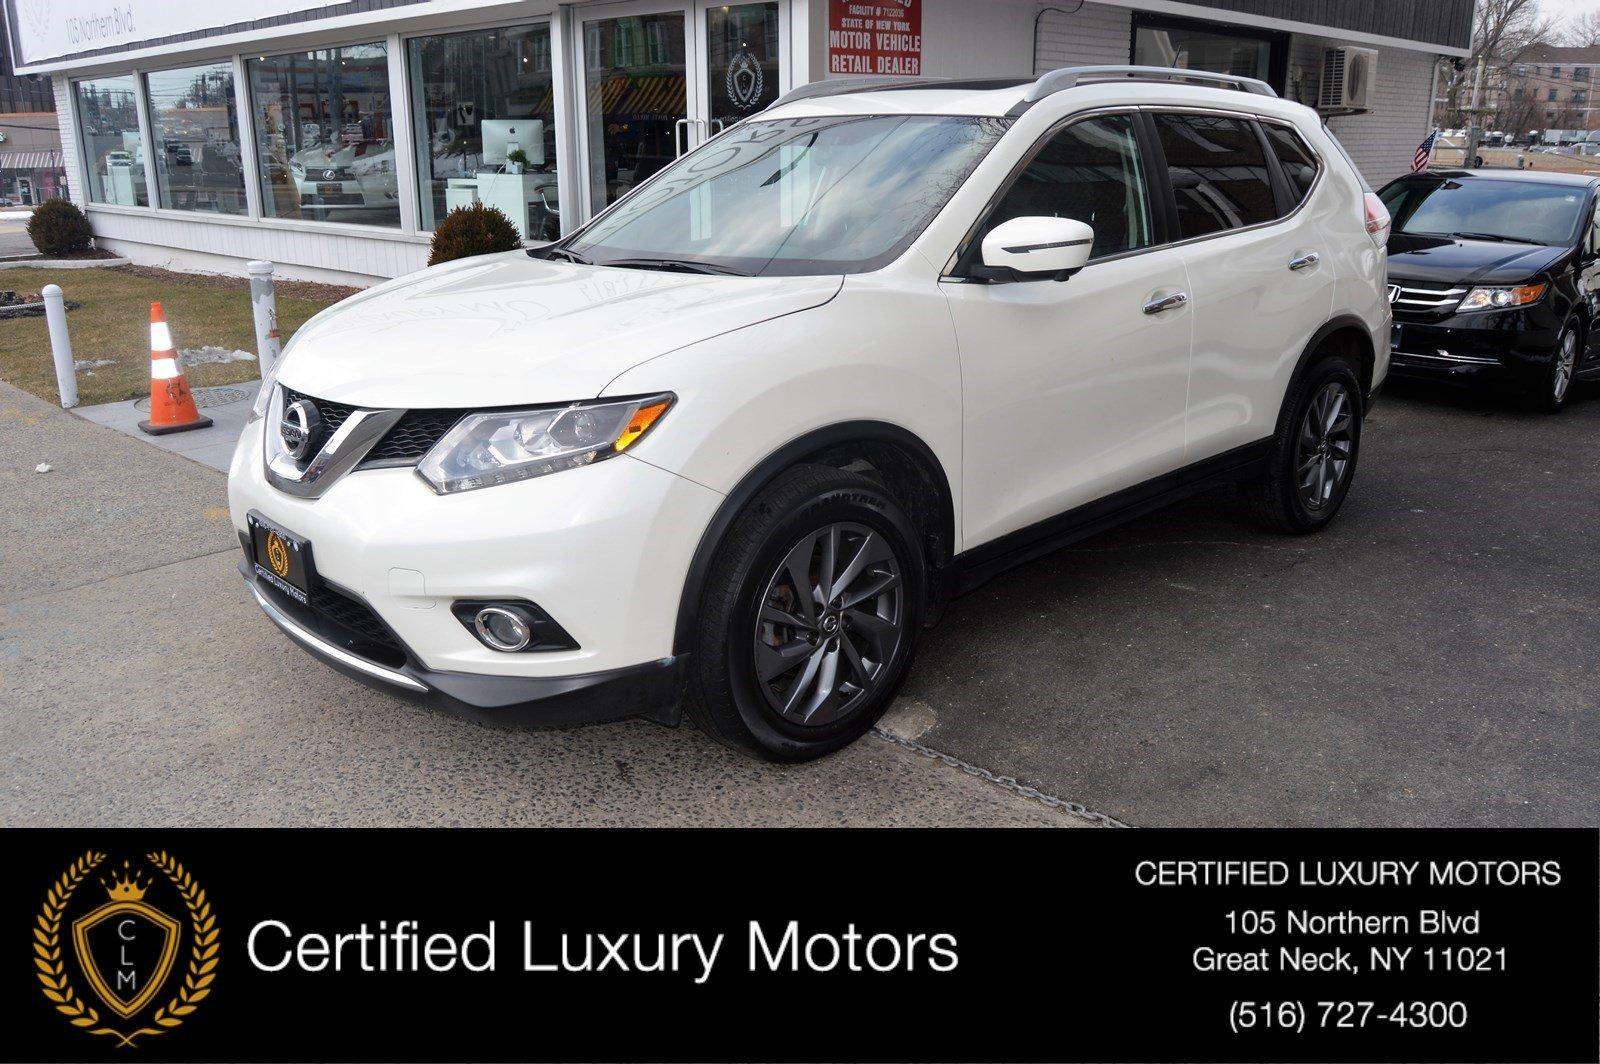 Used 2016 Nissan Rogue SL Awd (Navi, Pano Roof) | Great Neck, NY